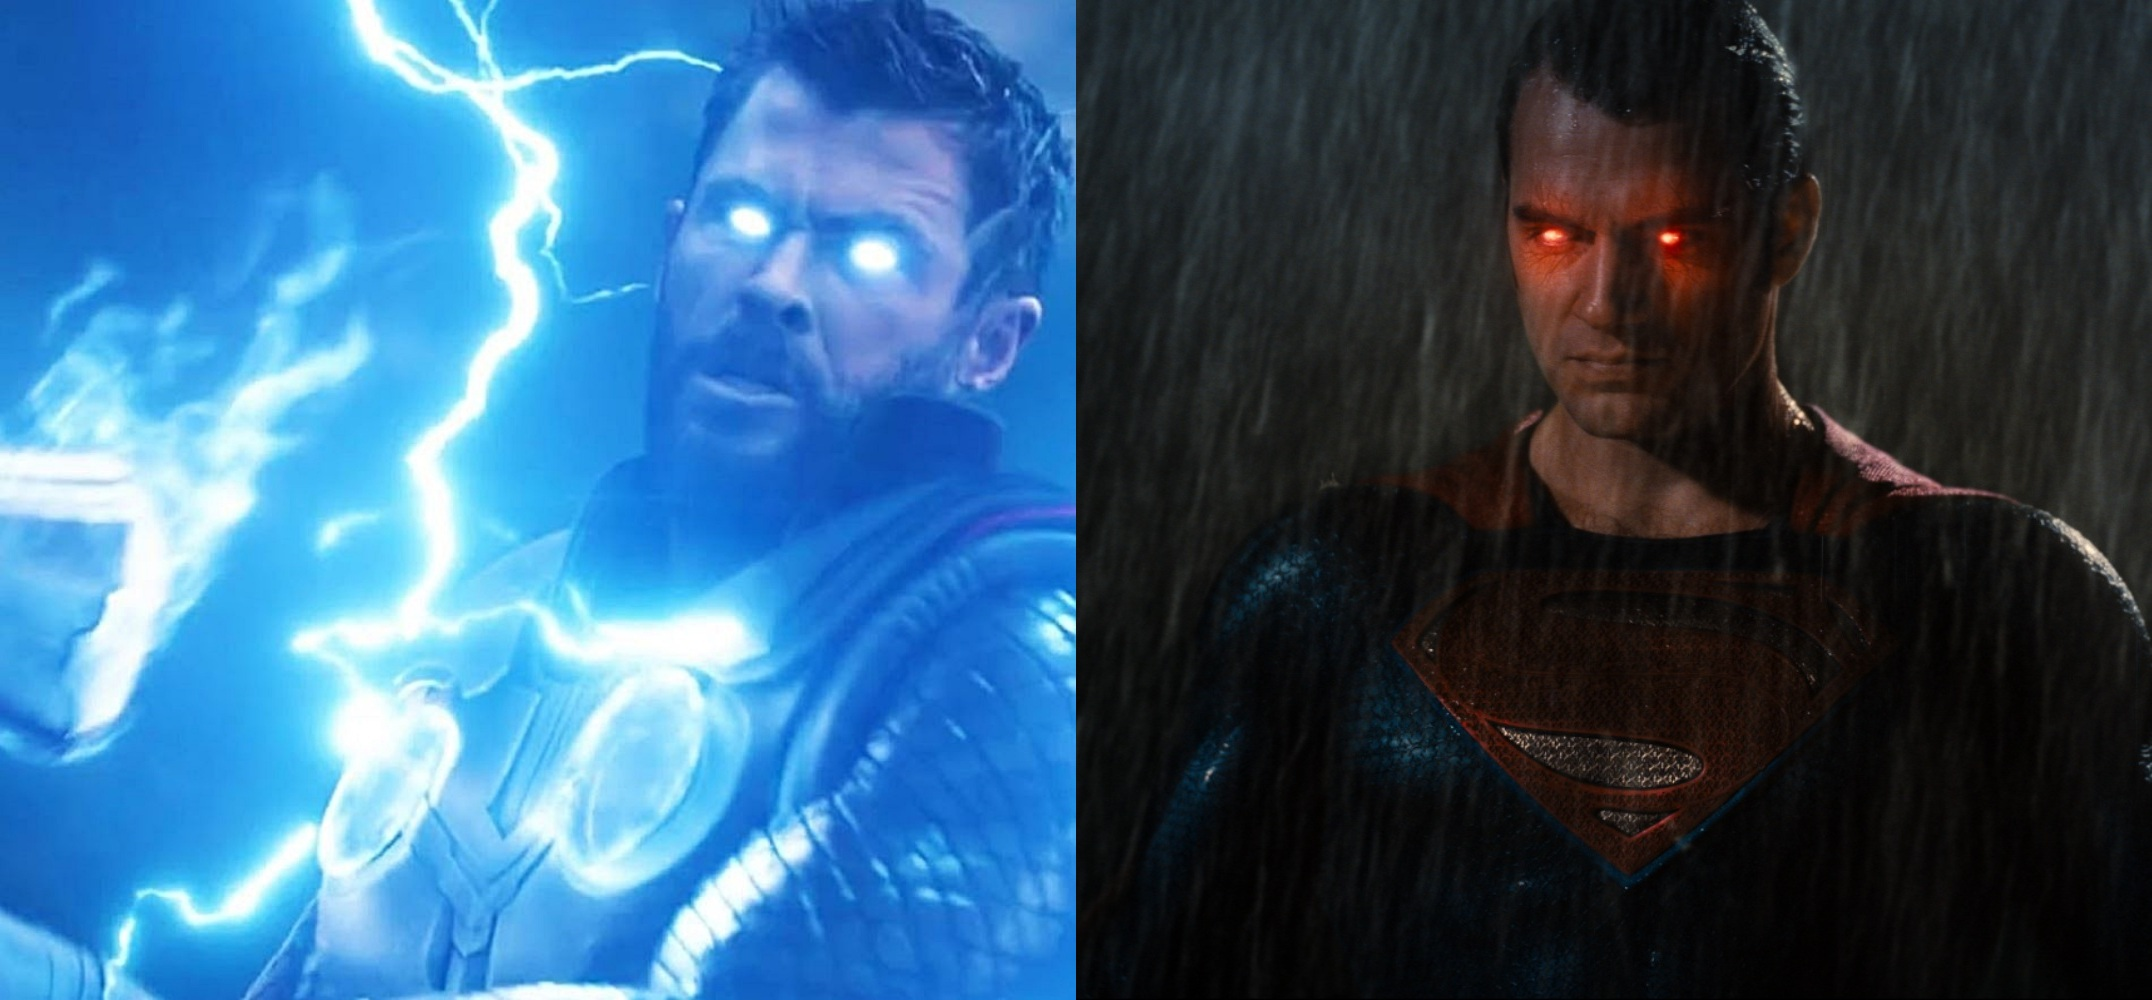 Marvel S Thor Vs Dc S Superman Who Would Win In A Fight